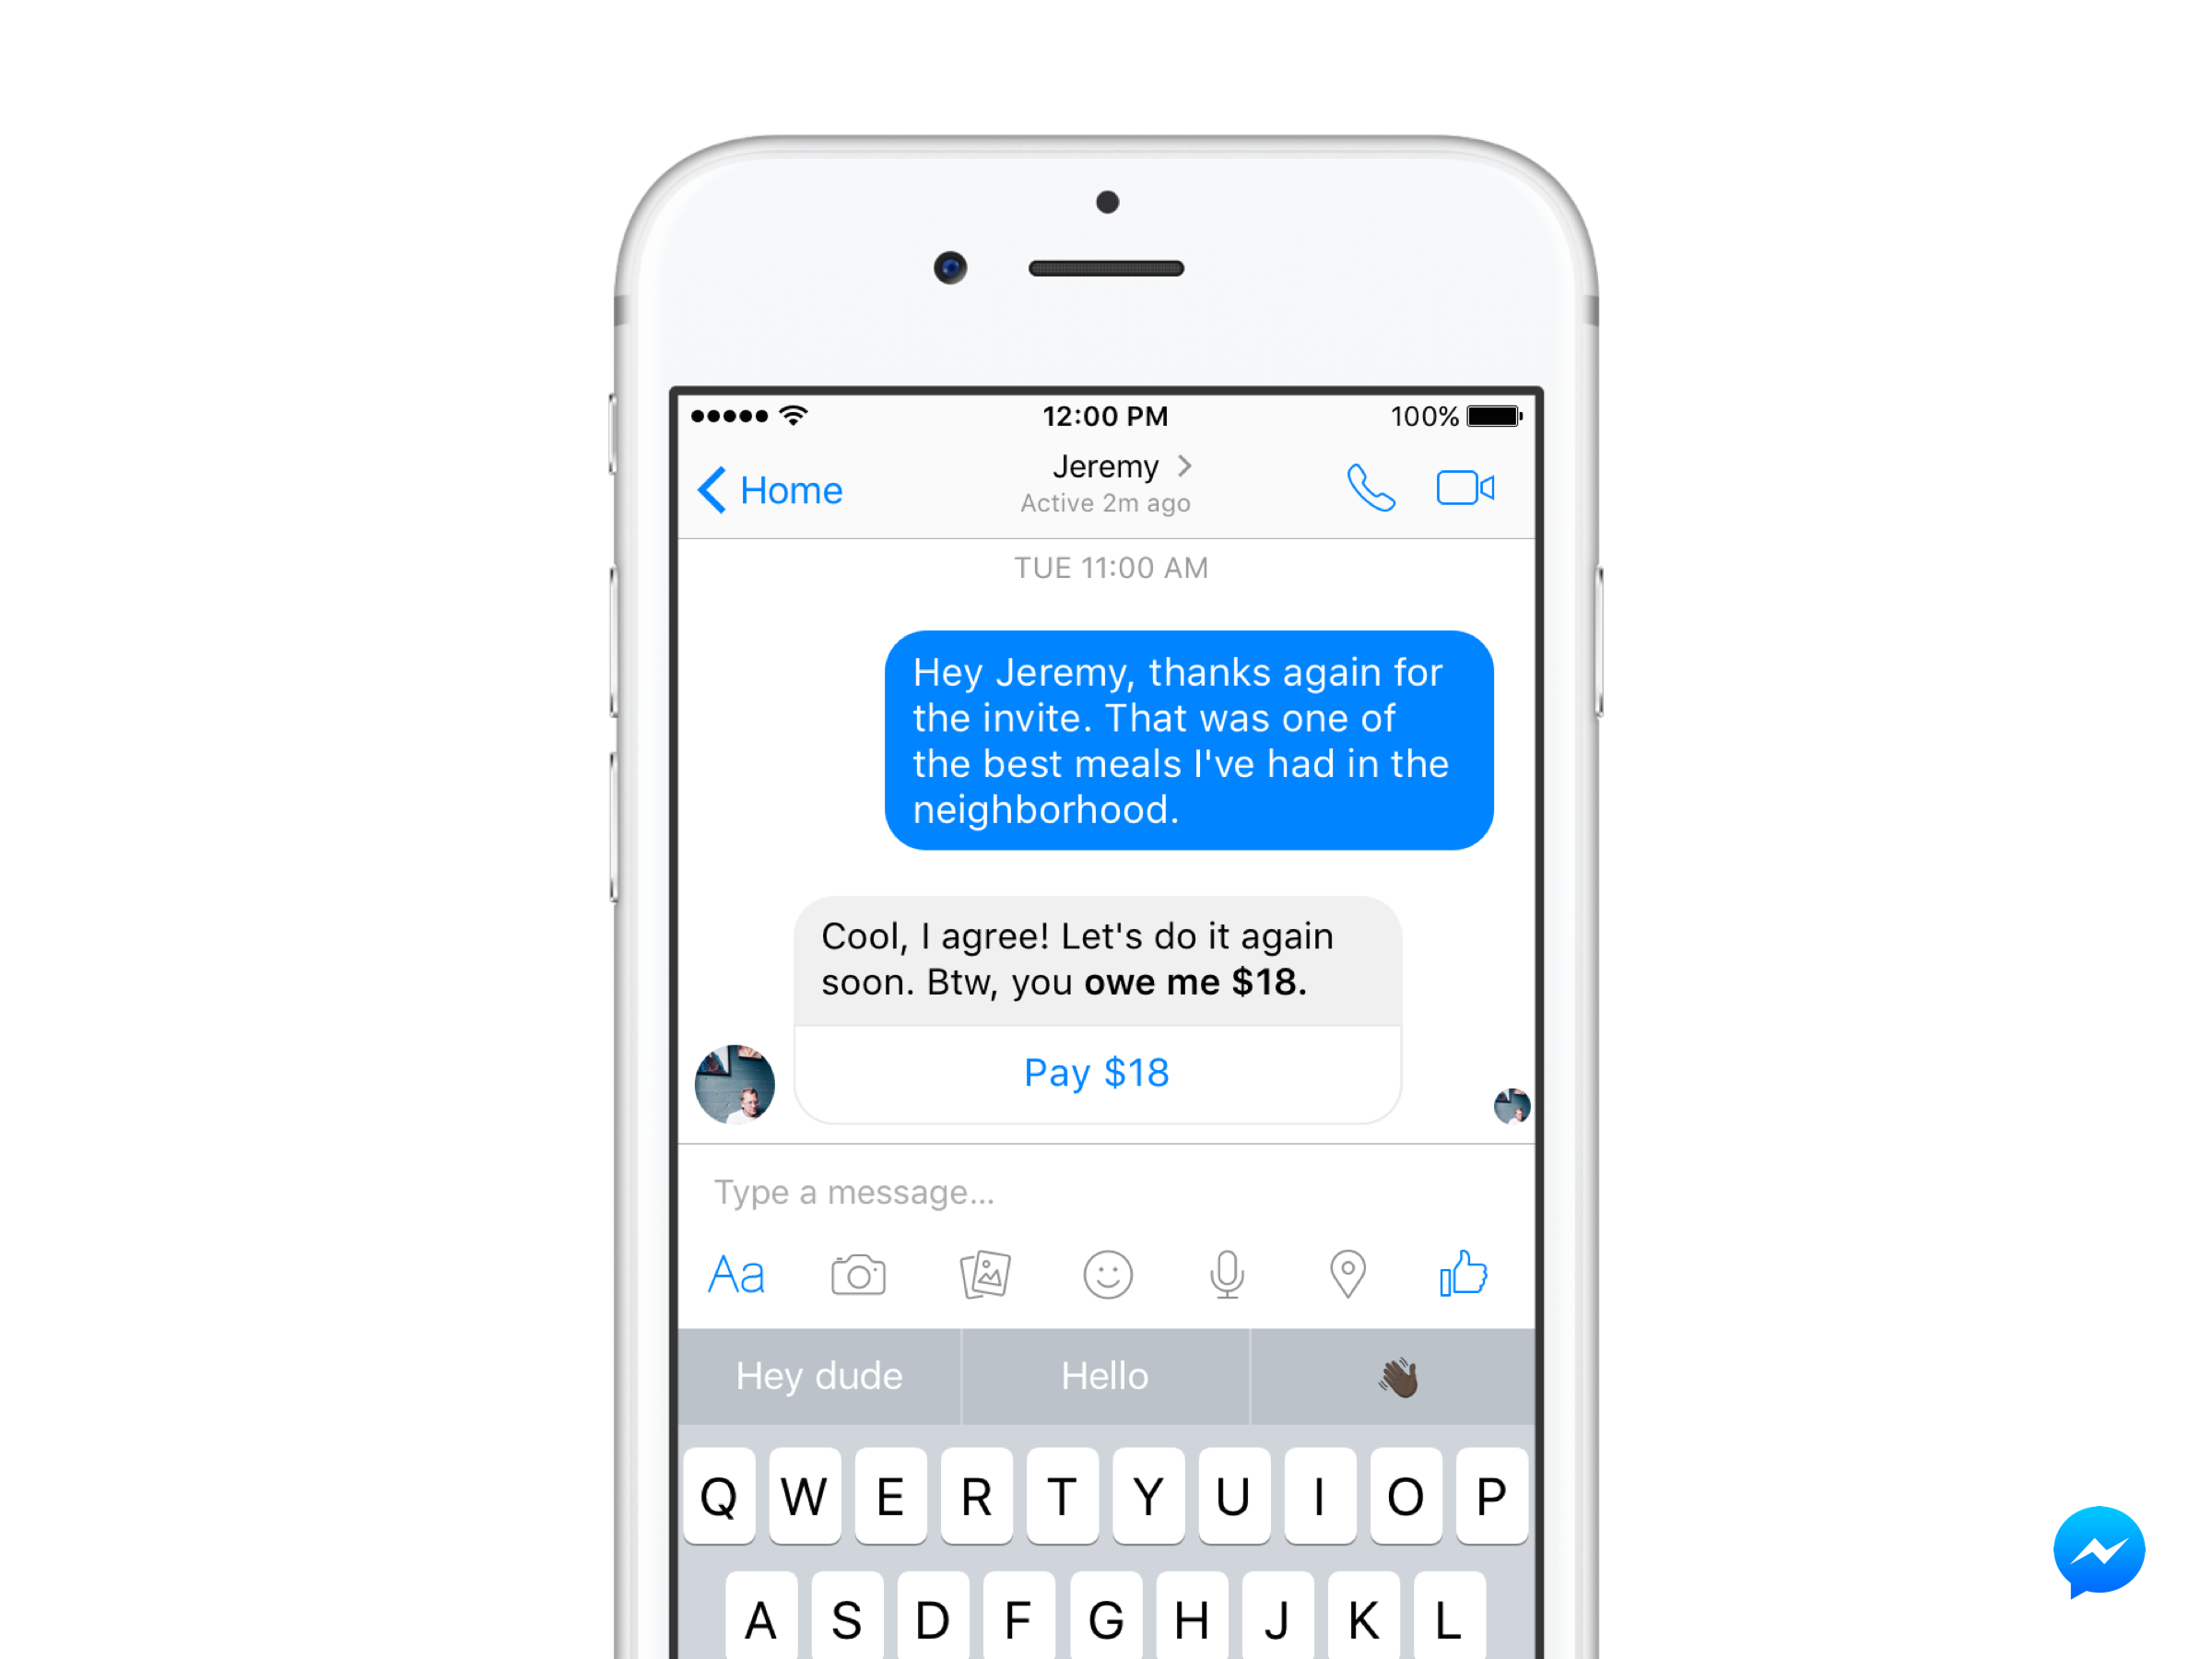 Facebook is using its chat assist technology to find ways to help users send money through Messenger.